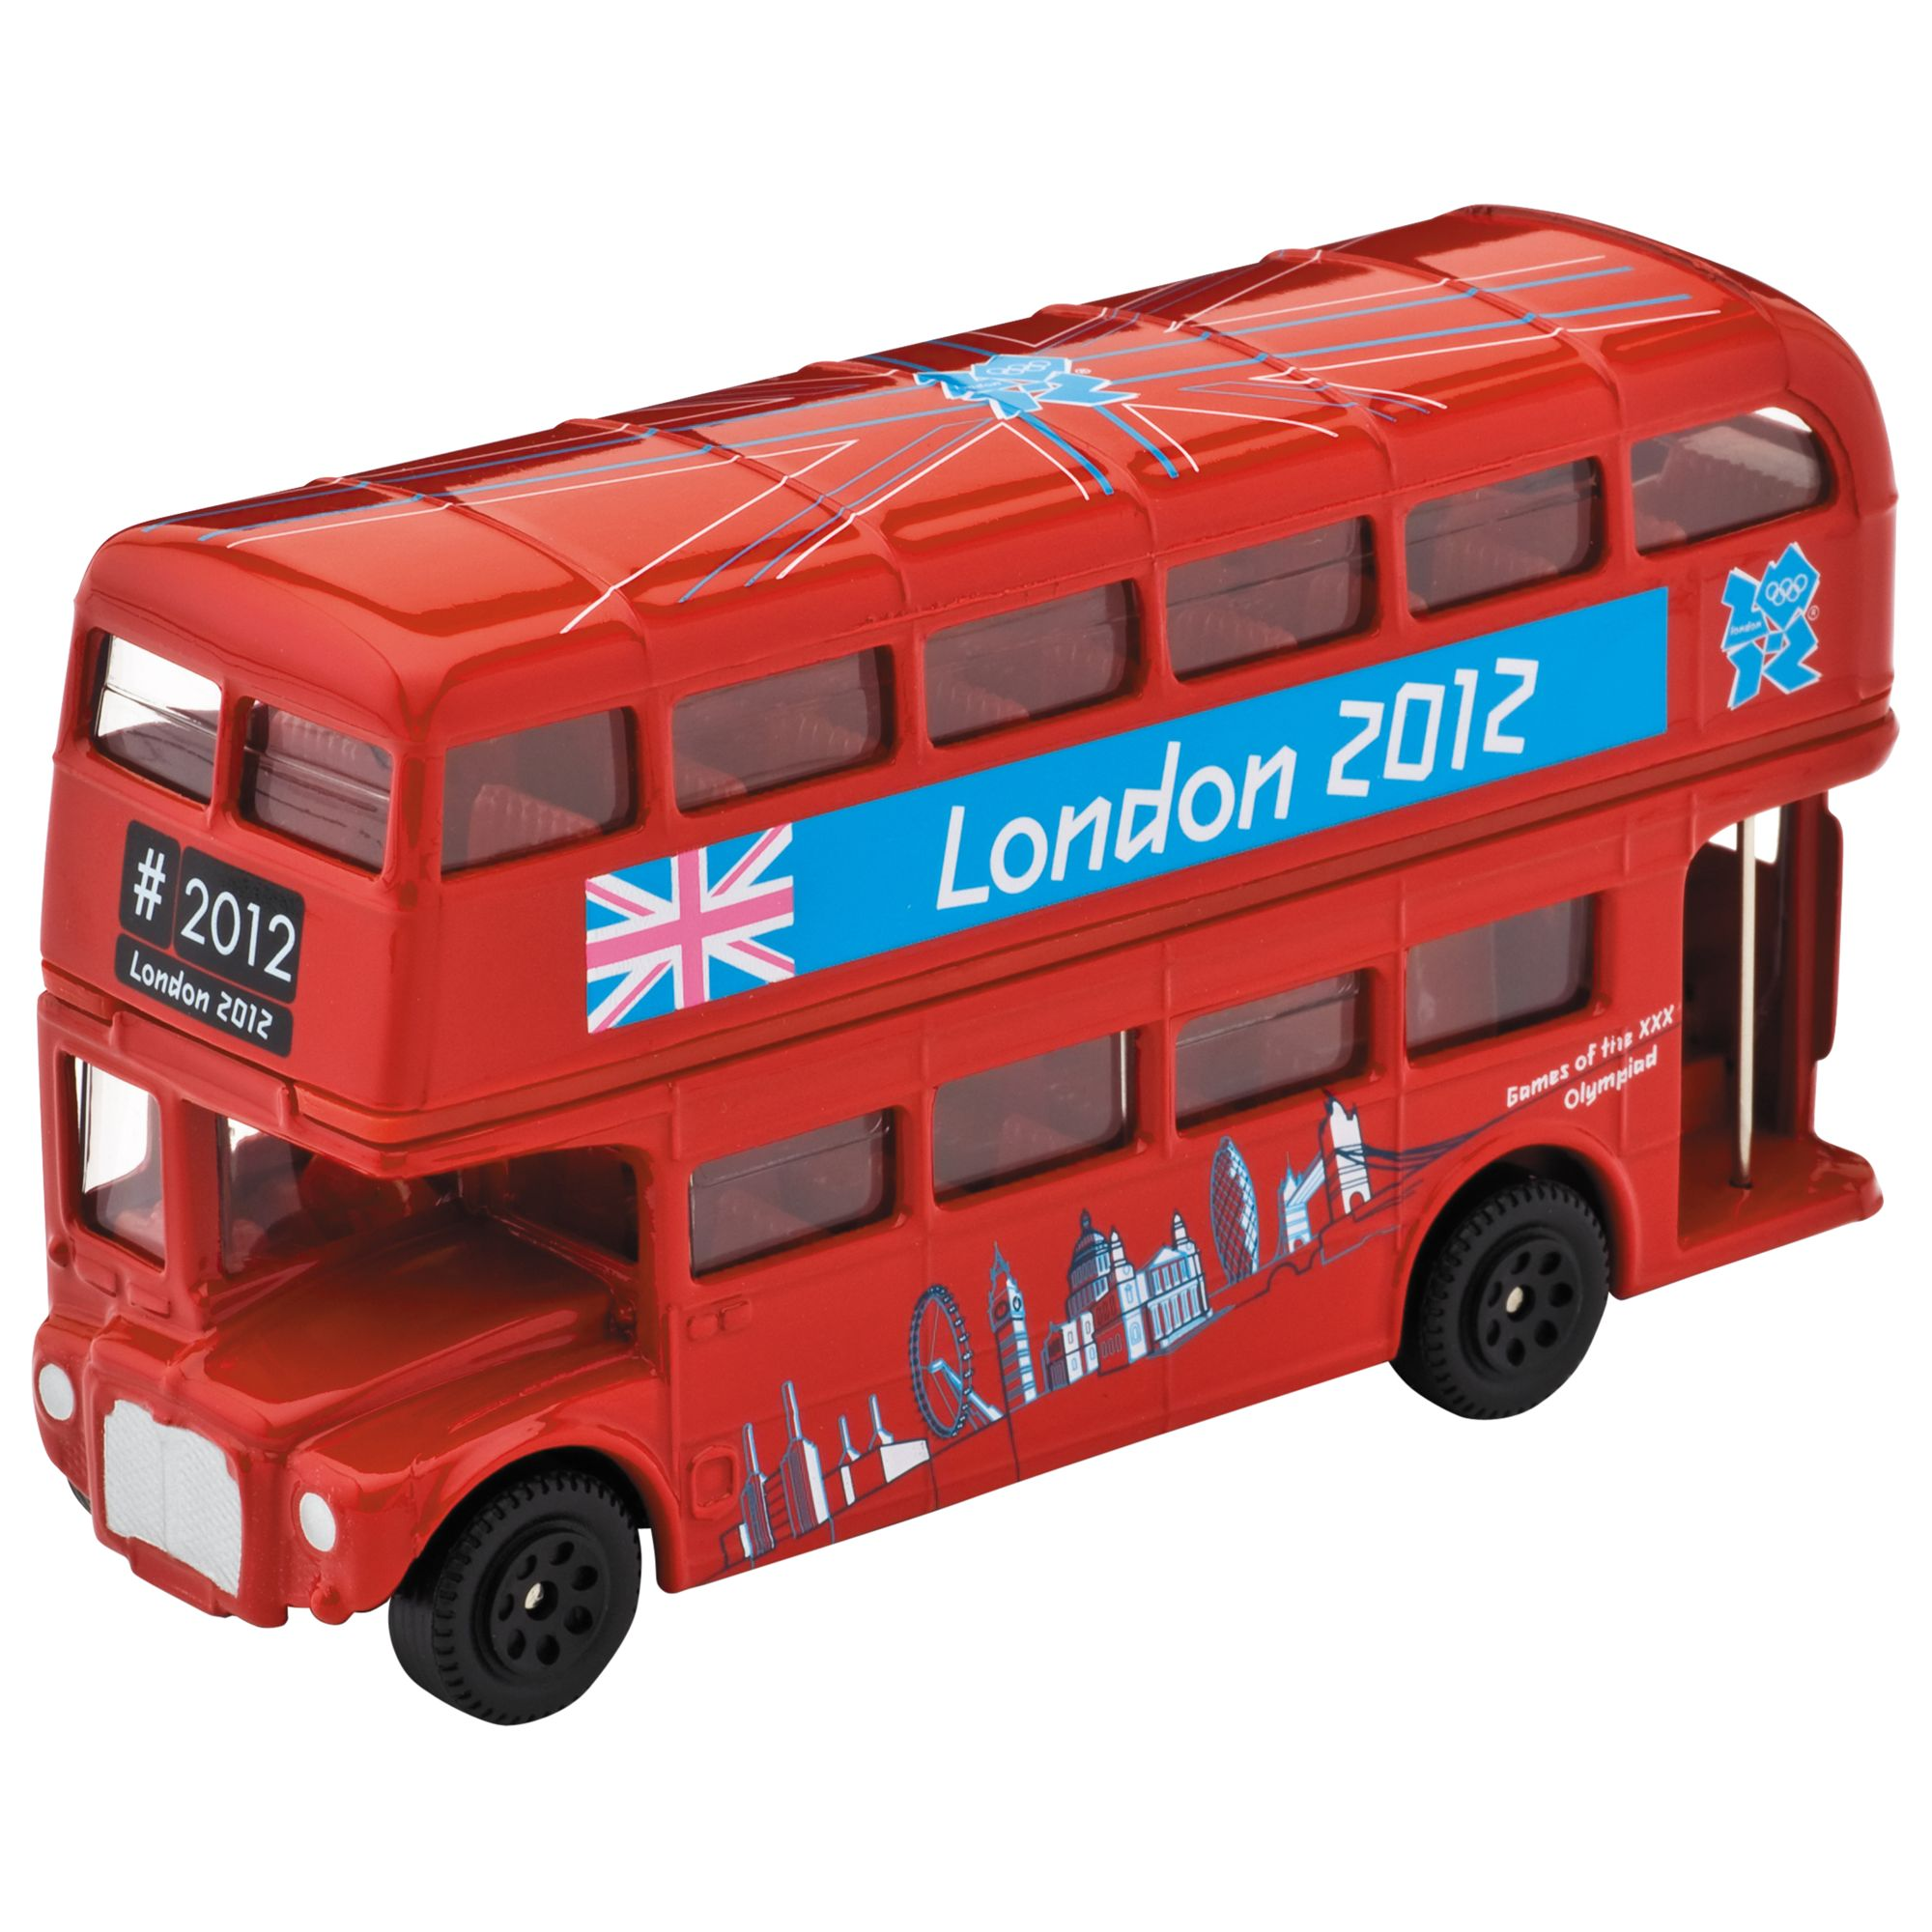 London 2012 Olympic Routemaster Bus